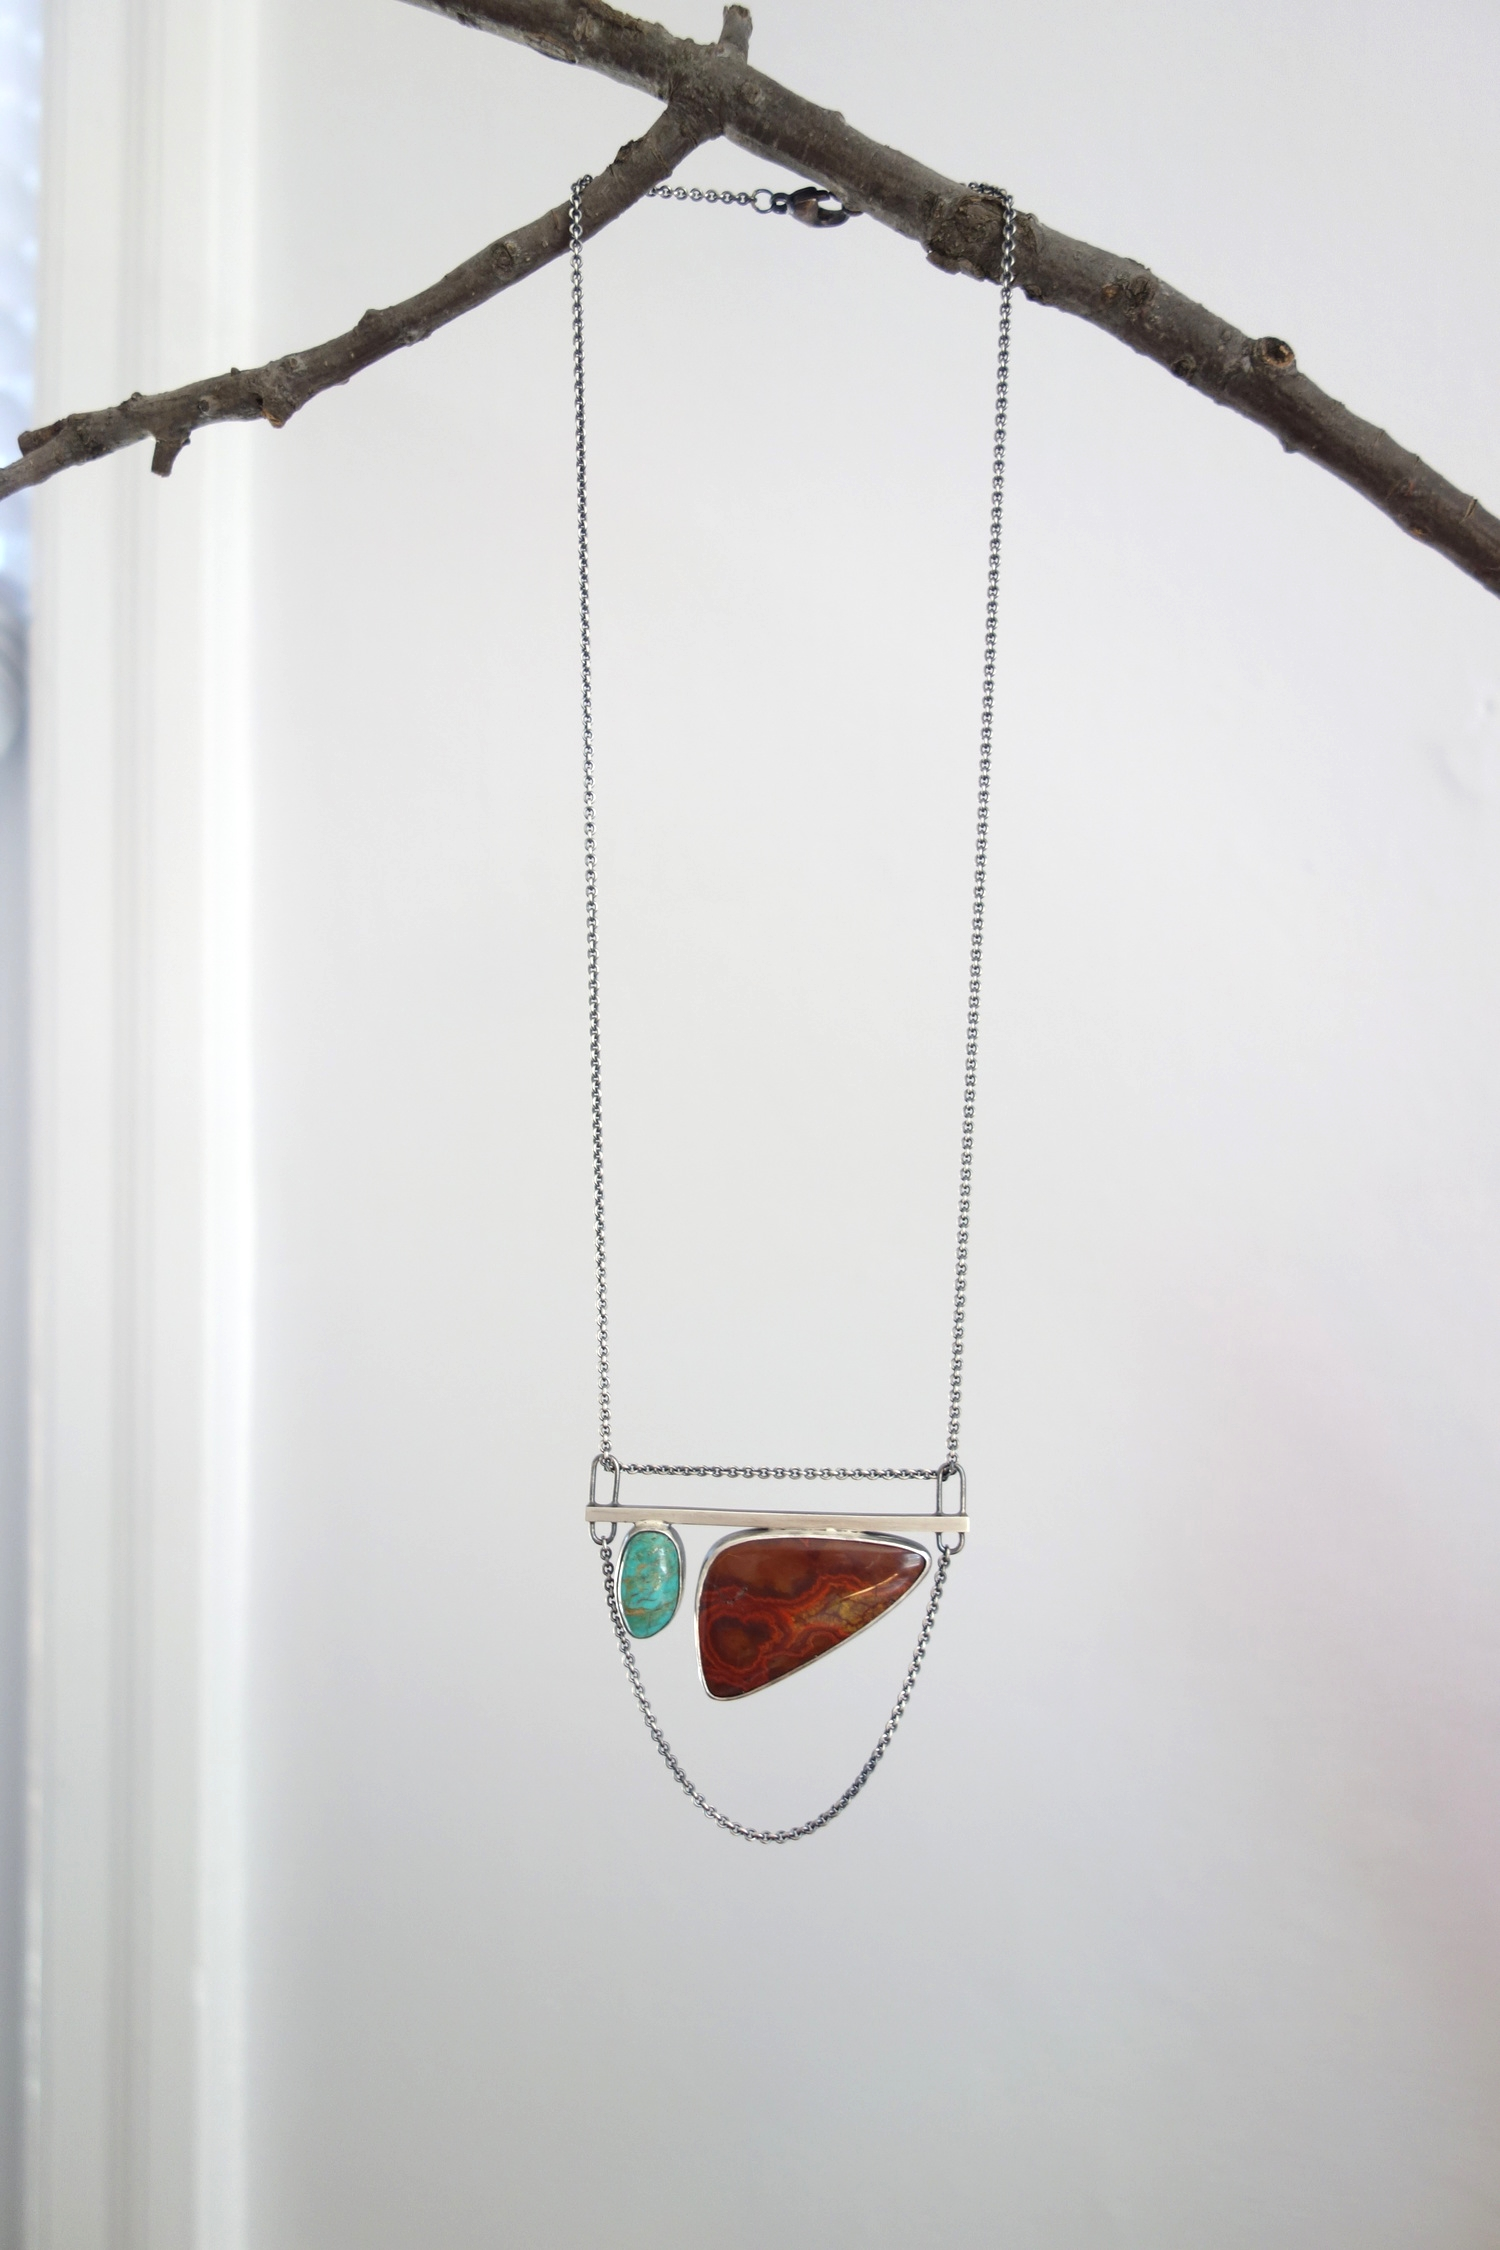 handcrafted sterling silver, turquoise, and red jasper statement necklace - meritmade